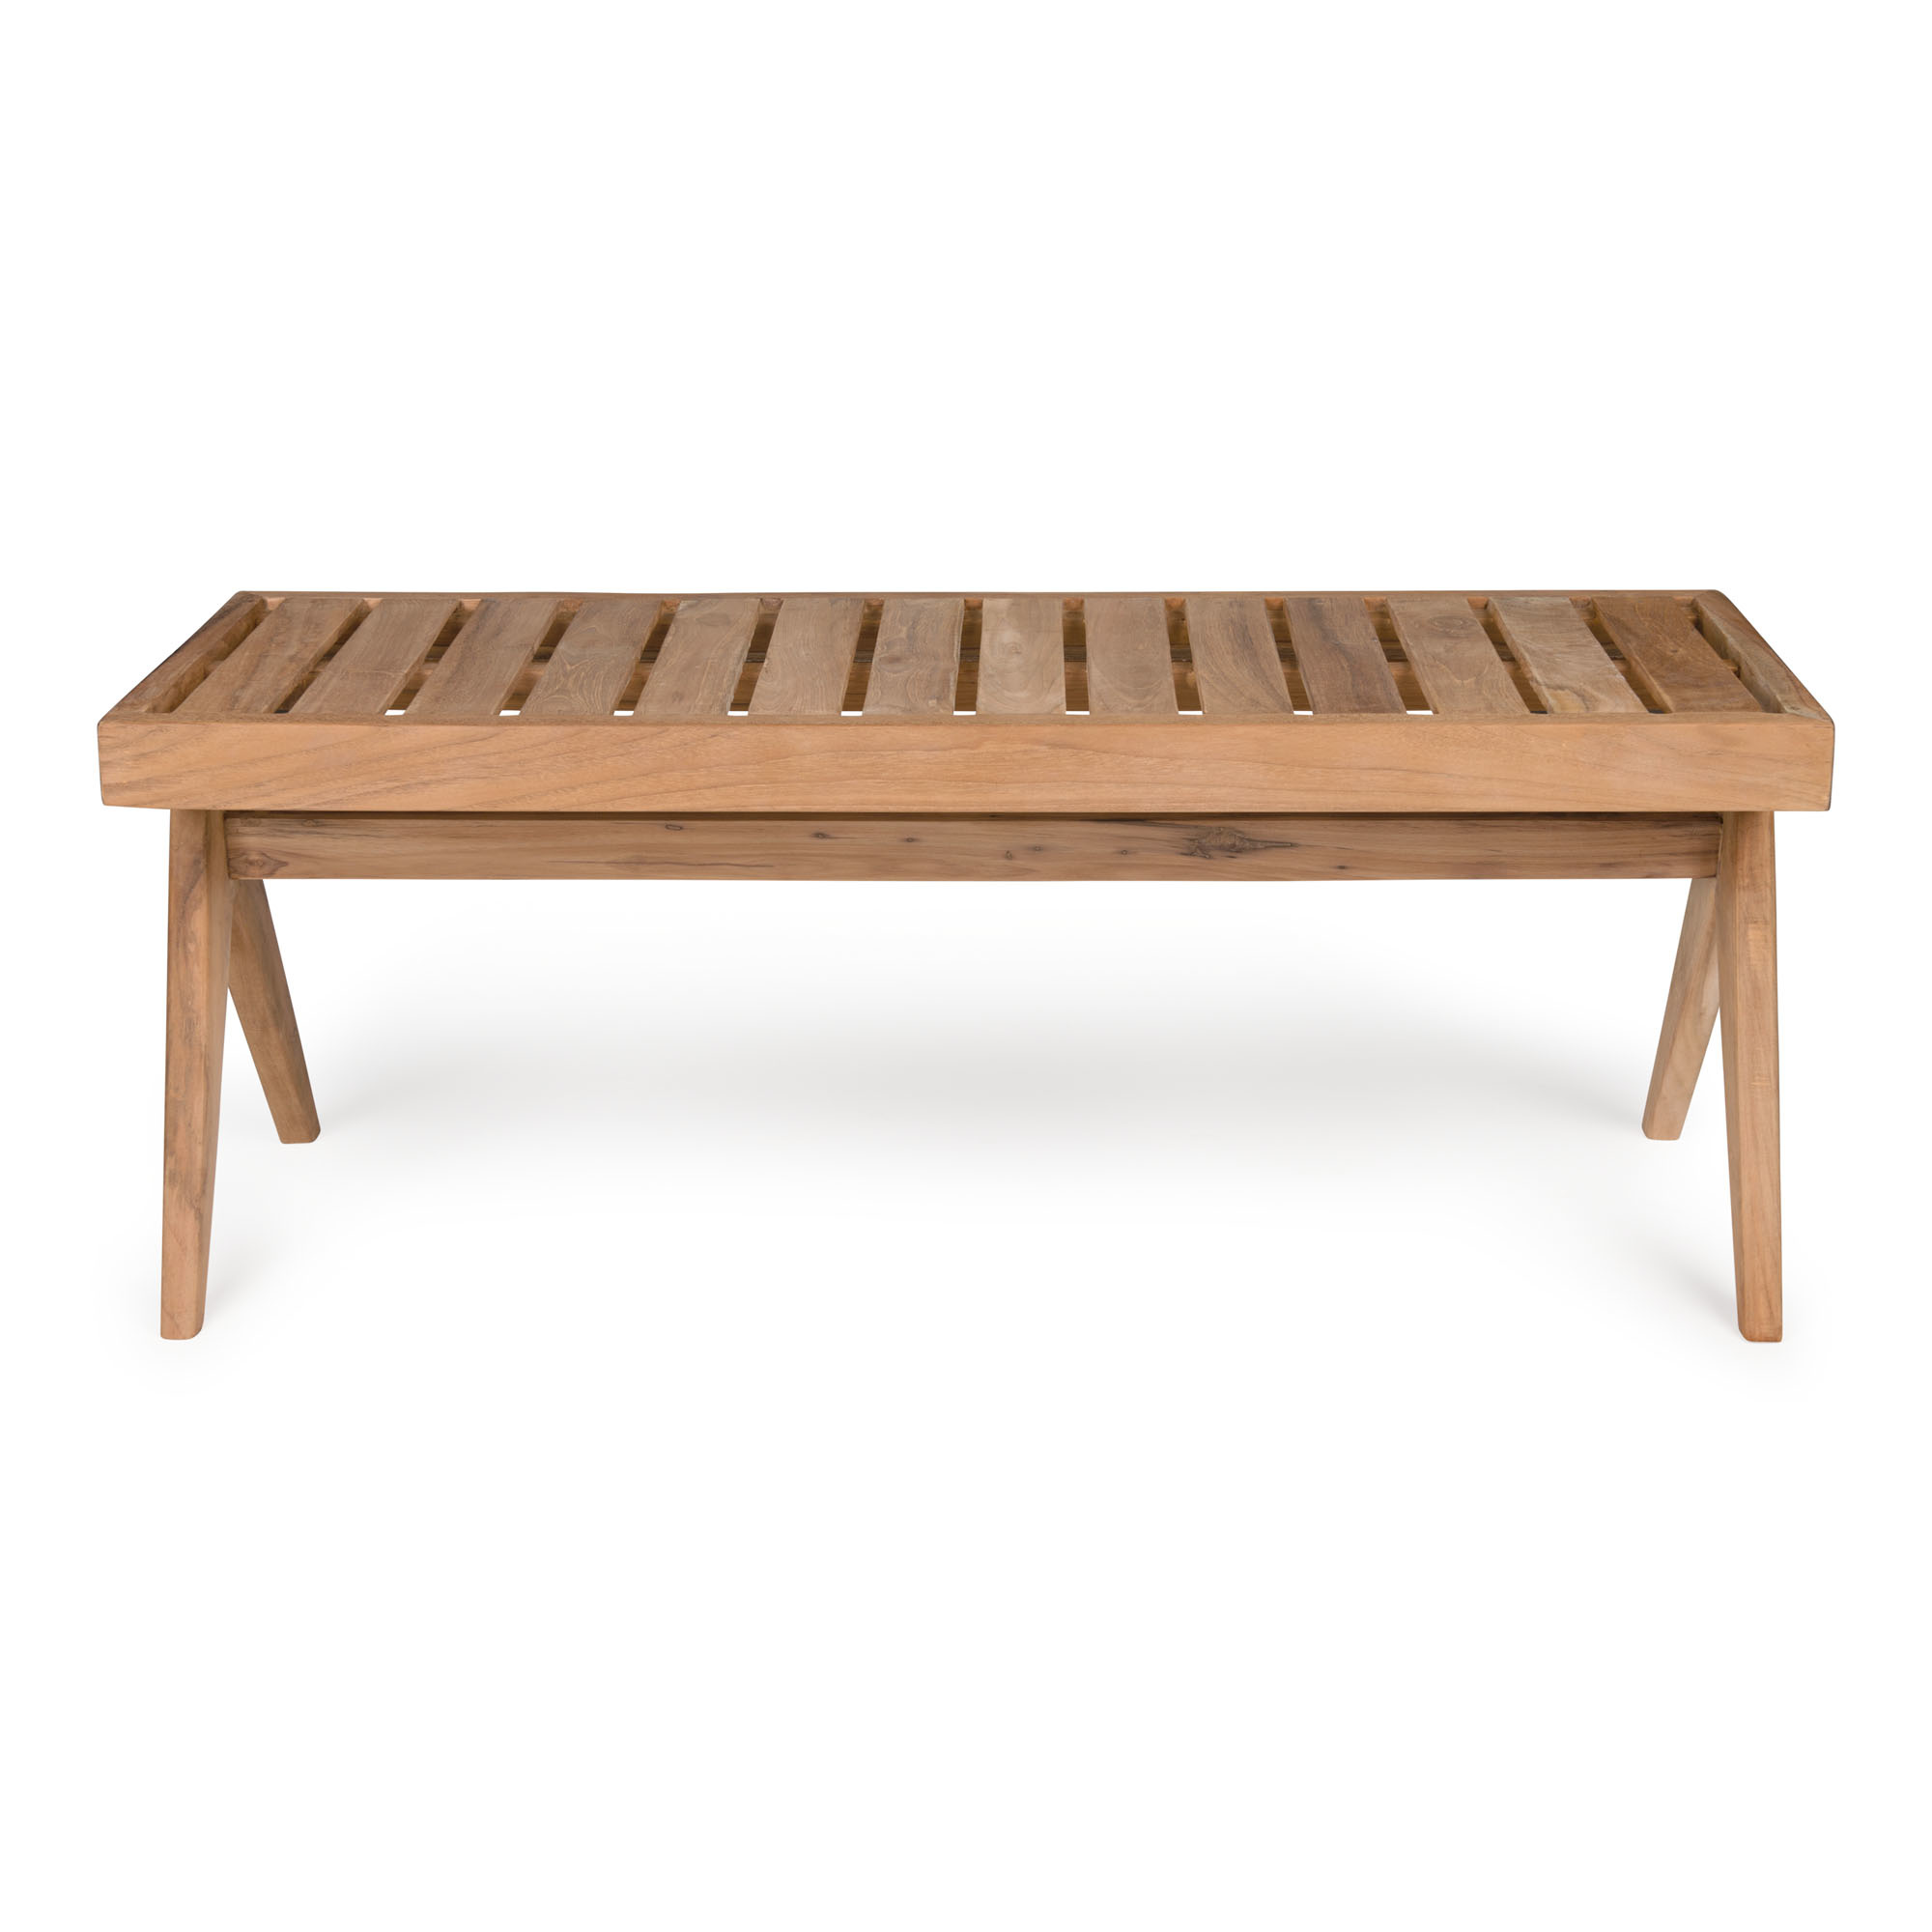 Bench / B.T.H. Flats 3 - Teak Outdoor-2